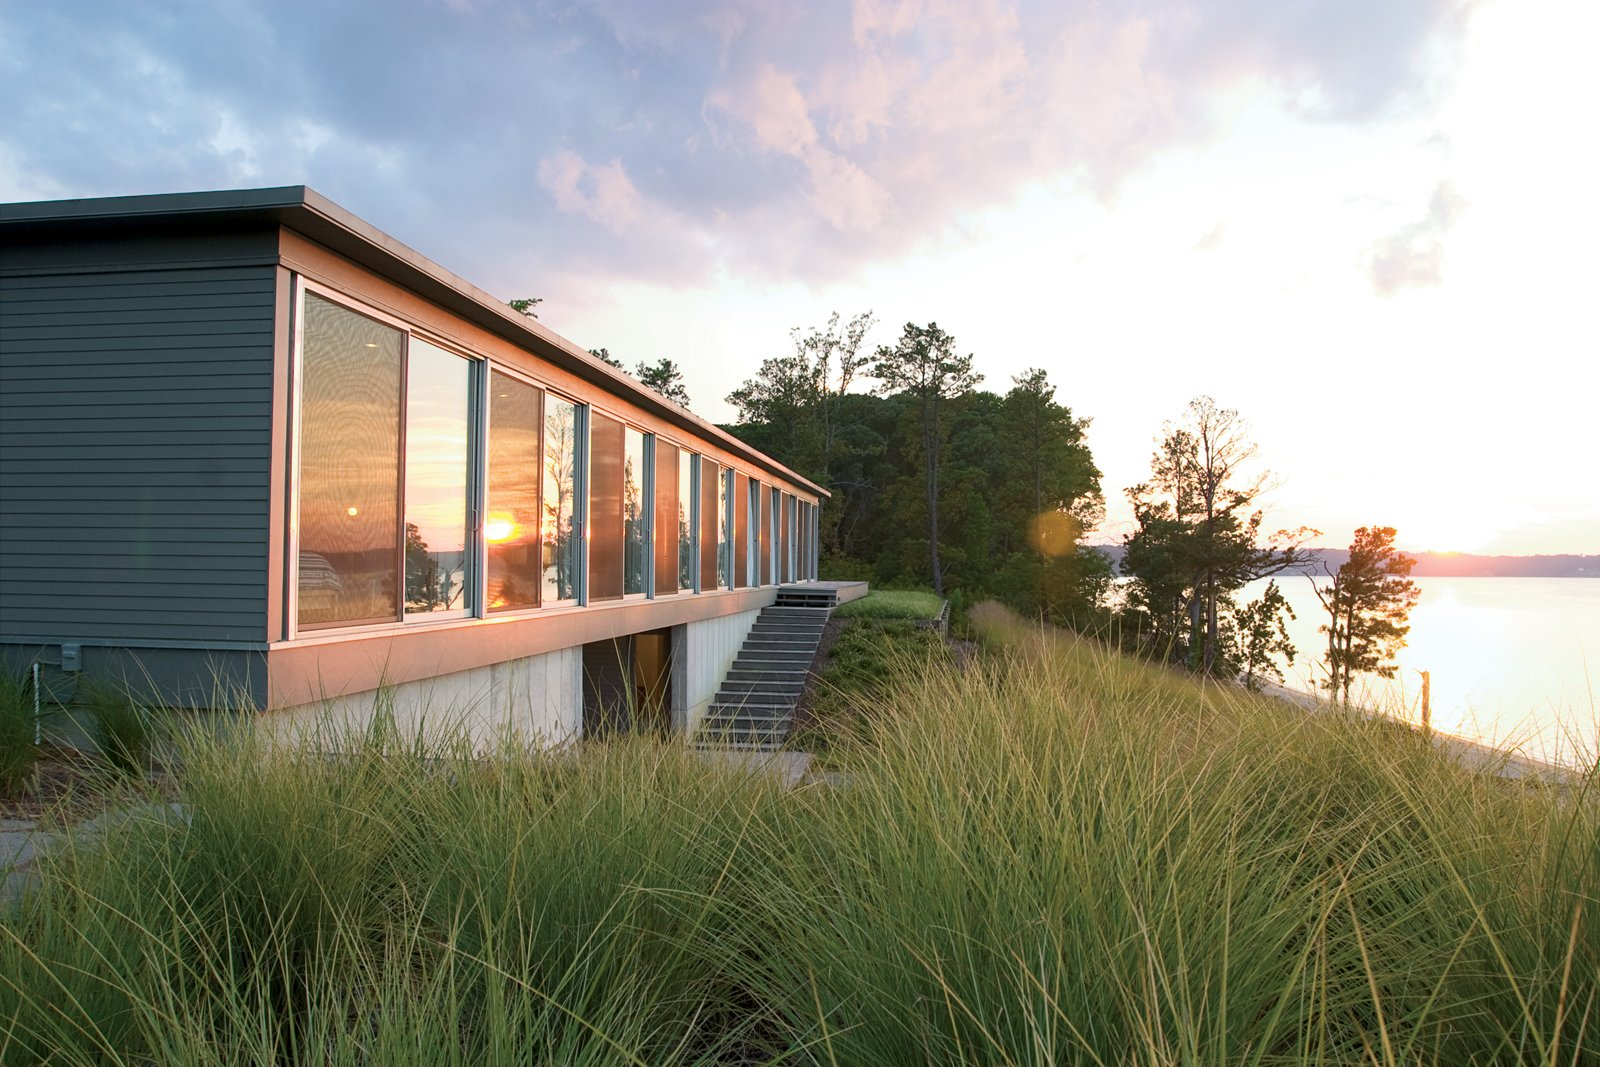 """Ziger/Snead Architects constructed this ode to rowing in rural Virginia for a Baltimore couple who share a love of sculling. """"Everywhere in the house you can see the moment where land meets water,"""" says Douglas Bothner, an associate at the firm. Tagged: Exterior, House, Wood Siding Material, Concrete Siding Material, and Metal Siding Material.  Photo 2 of 2 in Row House"""